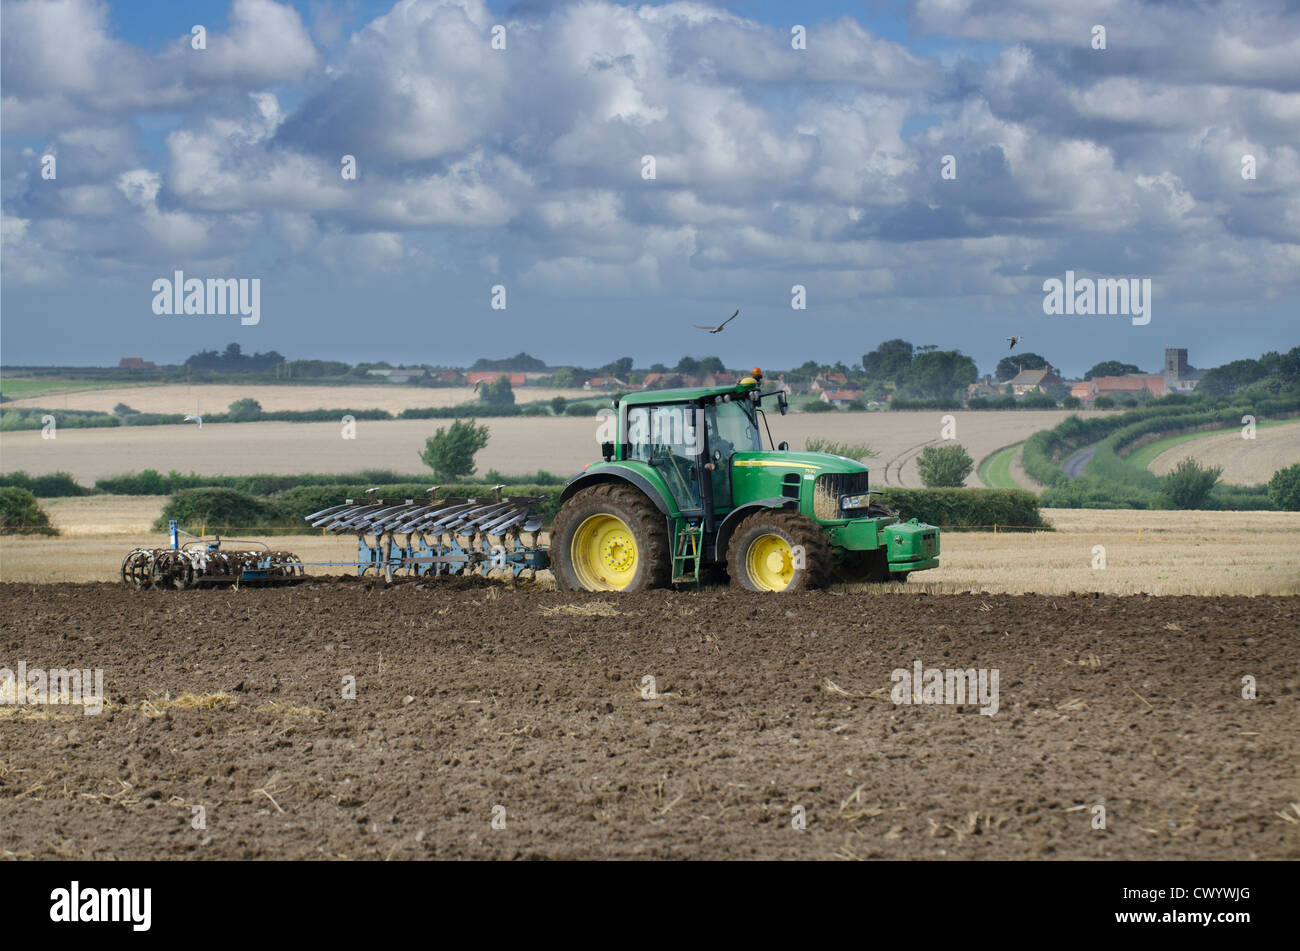 Tractor ploughing with Wighton village and parish church in distance, England - Stock Image